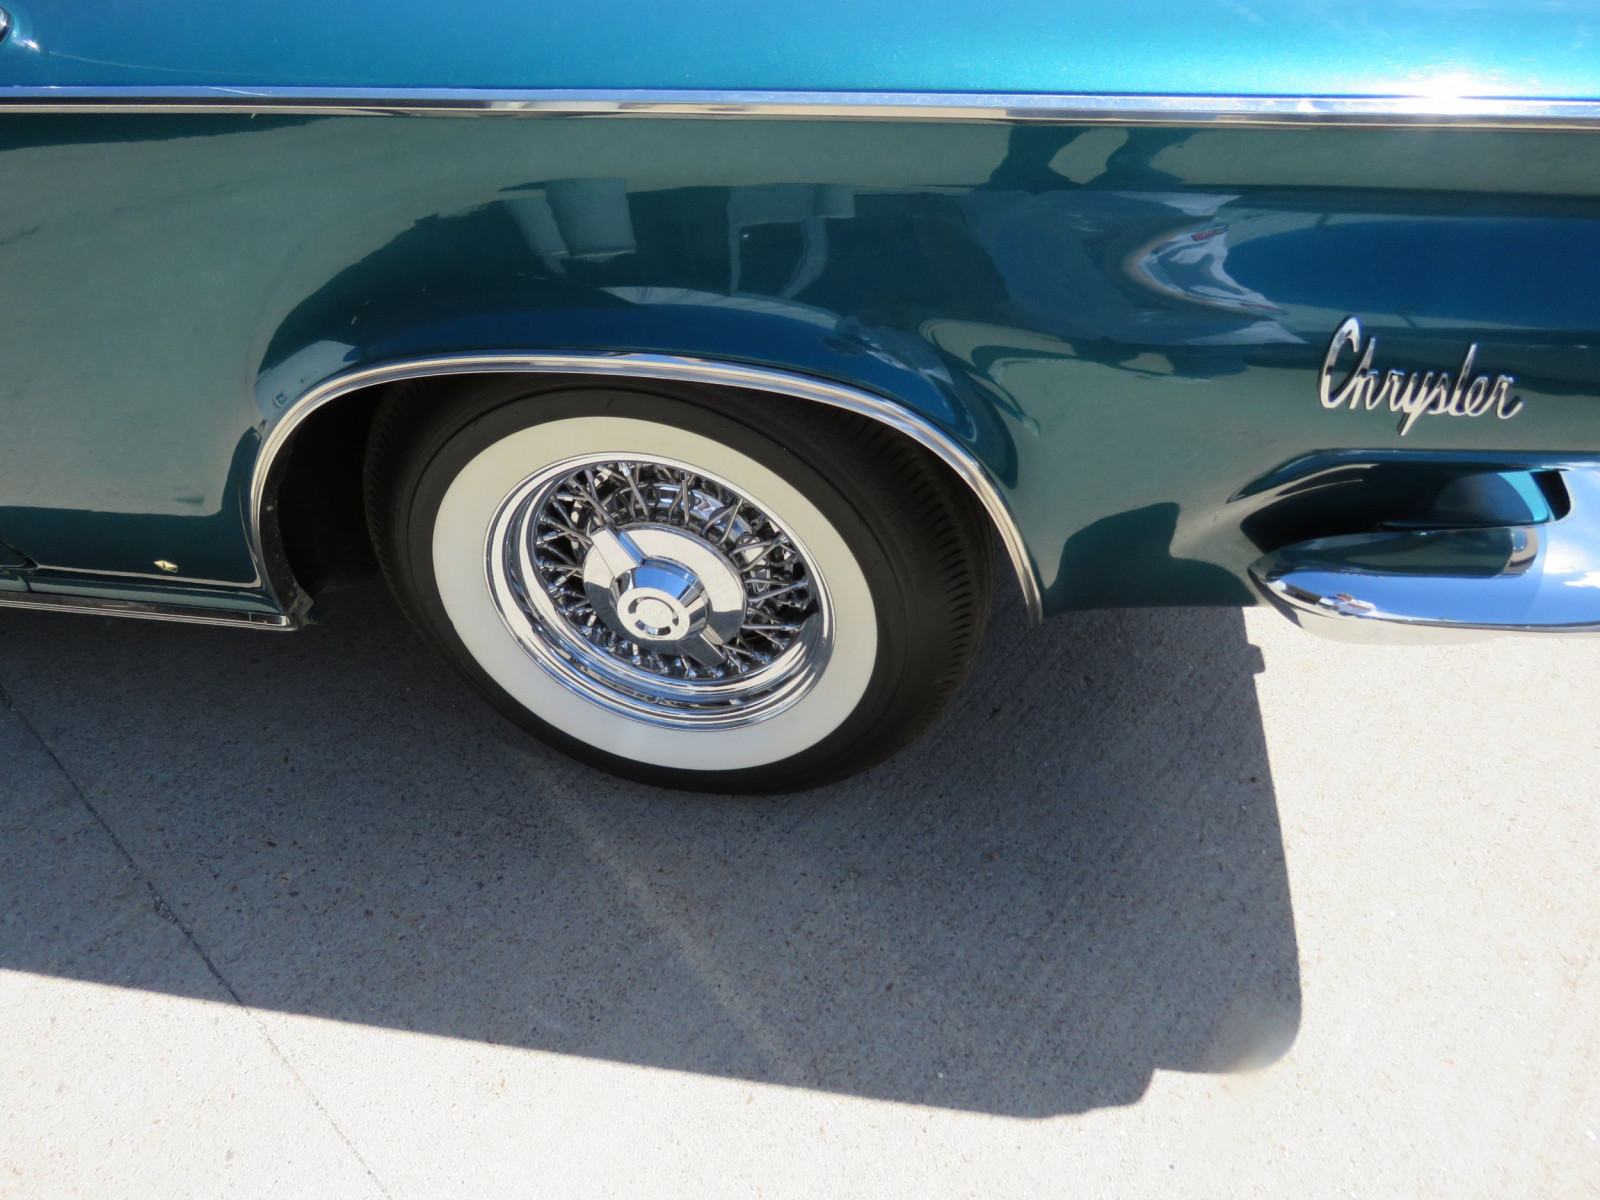 RARE 1963 Chrysler 300 Pace Setter Convertible Indy 500 Pace car - Image 4